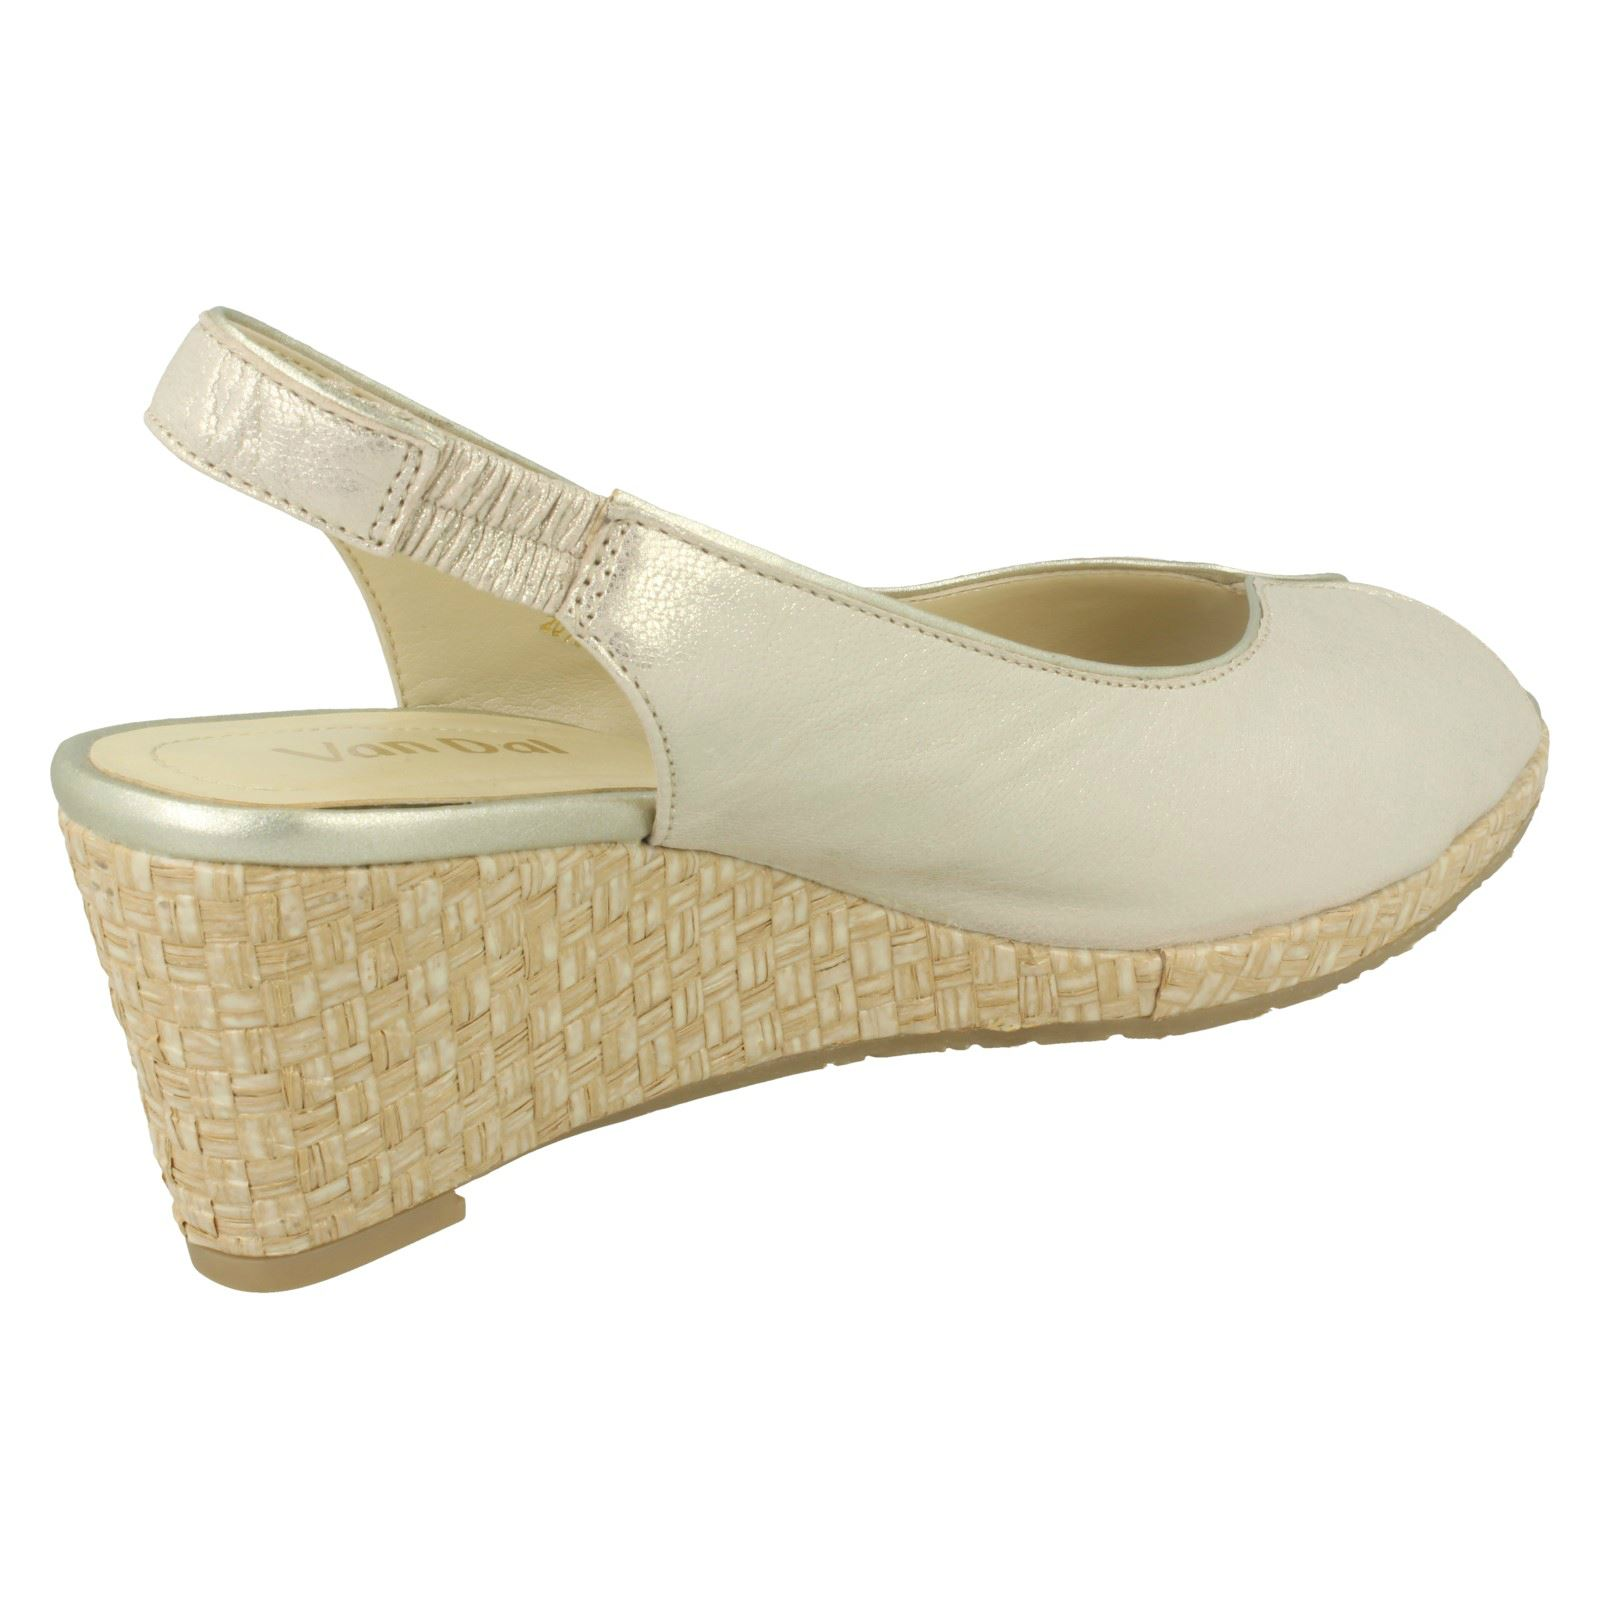 Ladies-Van-Dal-Leather-Wedge-Sandal-With-Woven-Detail-Avalon thumbnail 16